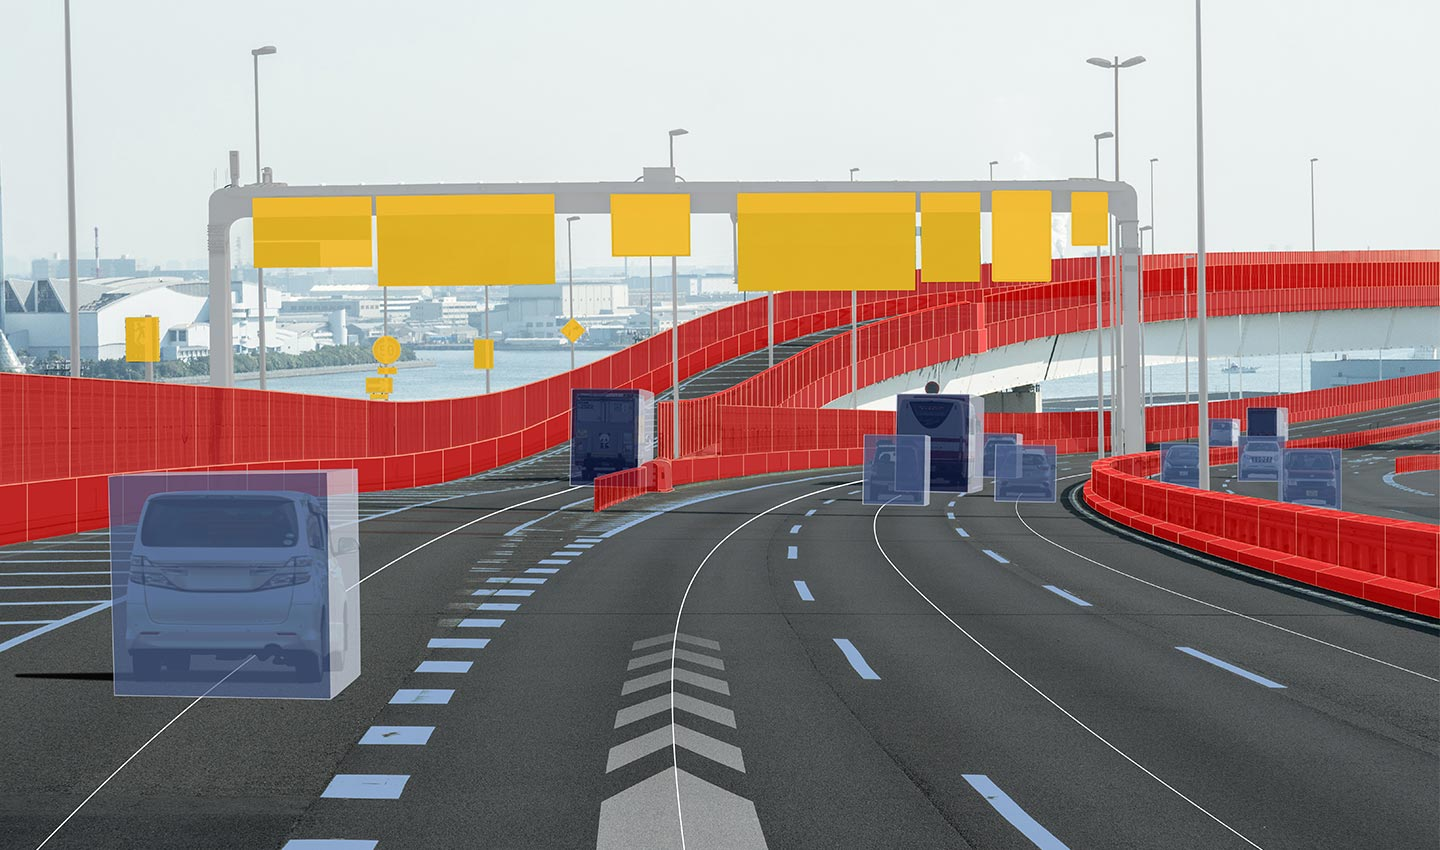 The TomTom HD Map delivers highly accurate, up-to-date and realistic representations of the road